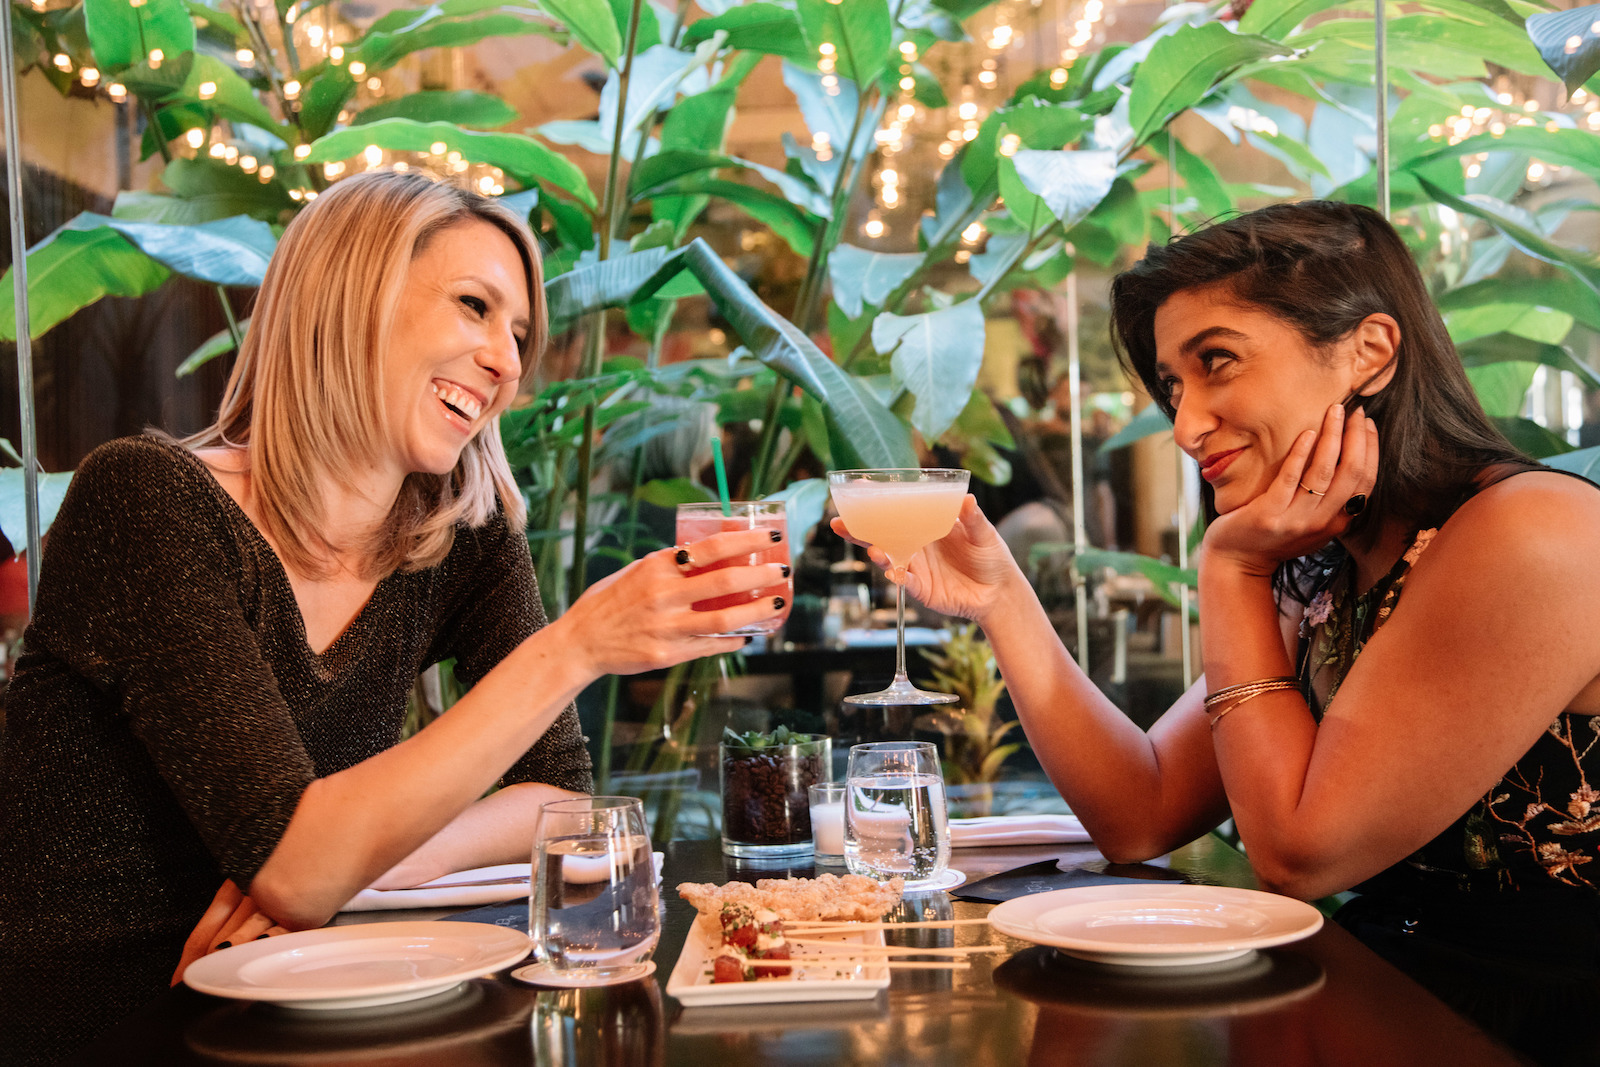 A couple enjoys craft cocktails while dining